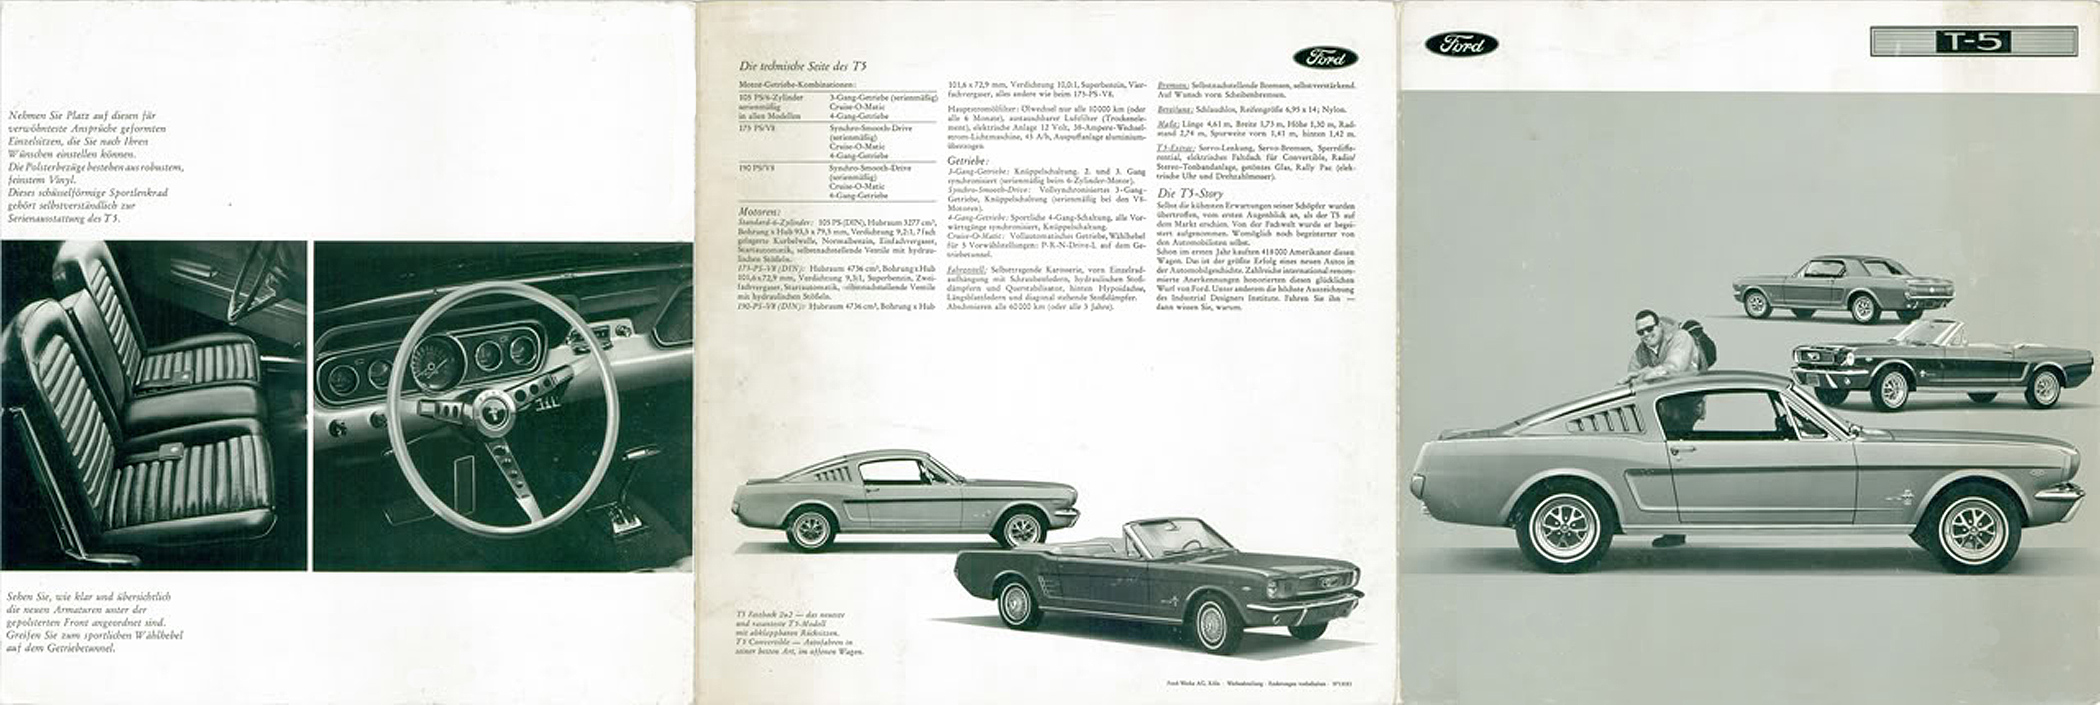 1966 Ford Mustang T5 Prospekt - Seite 1